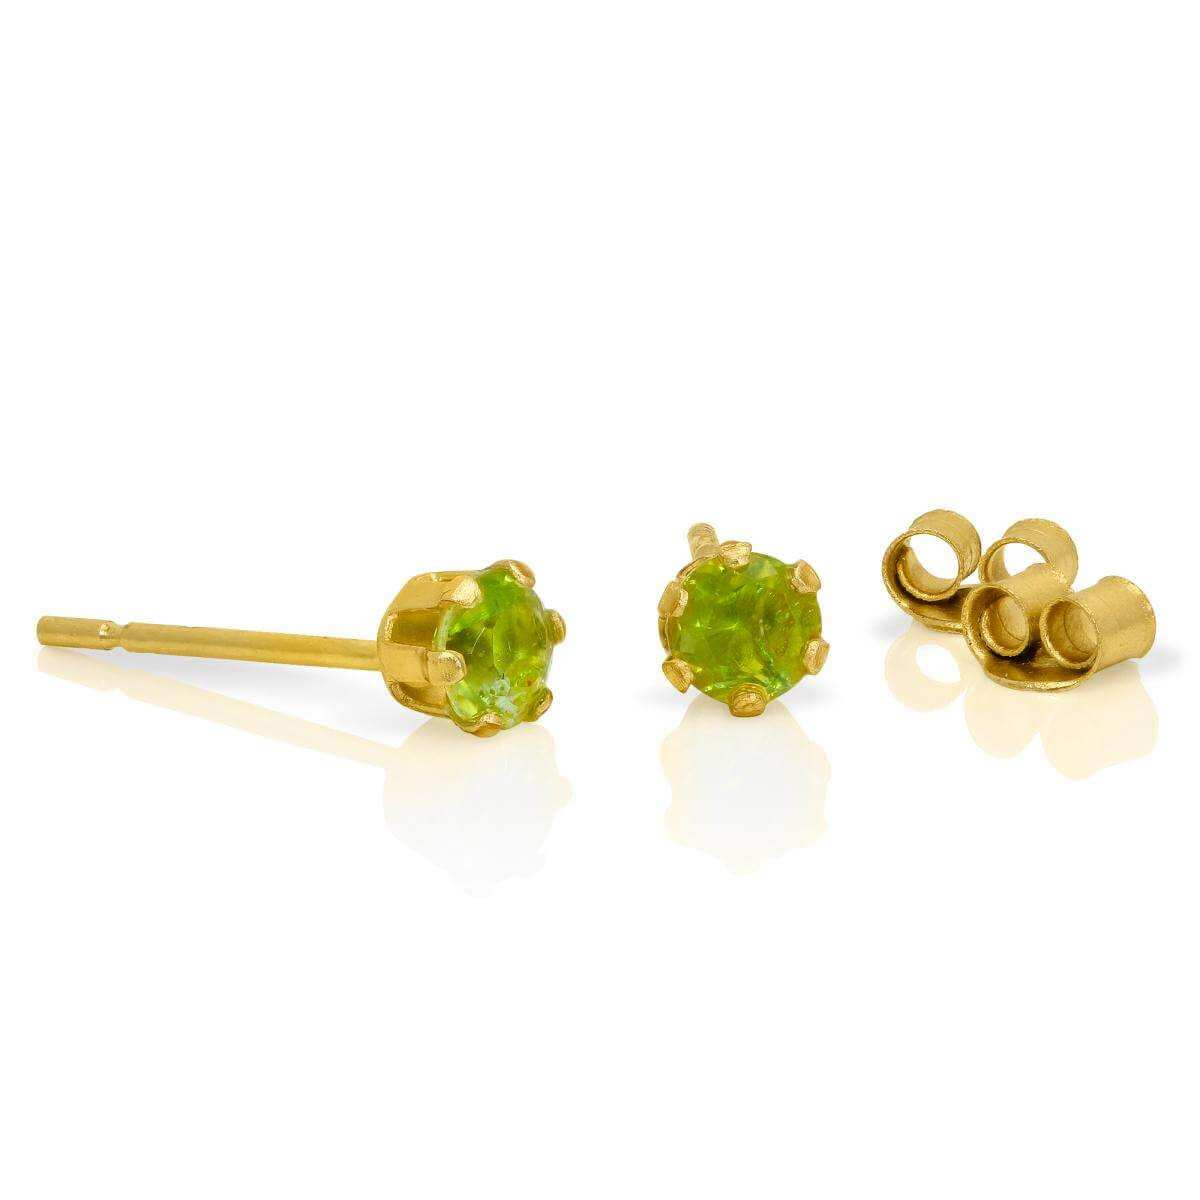 9ct Gold & 3mm Round Peridot Gemstone Stud Earrings